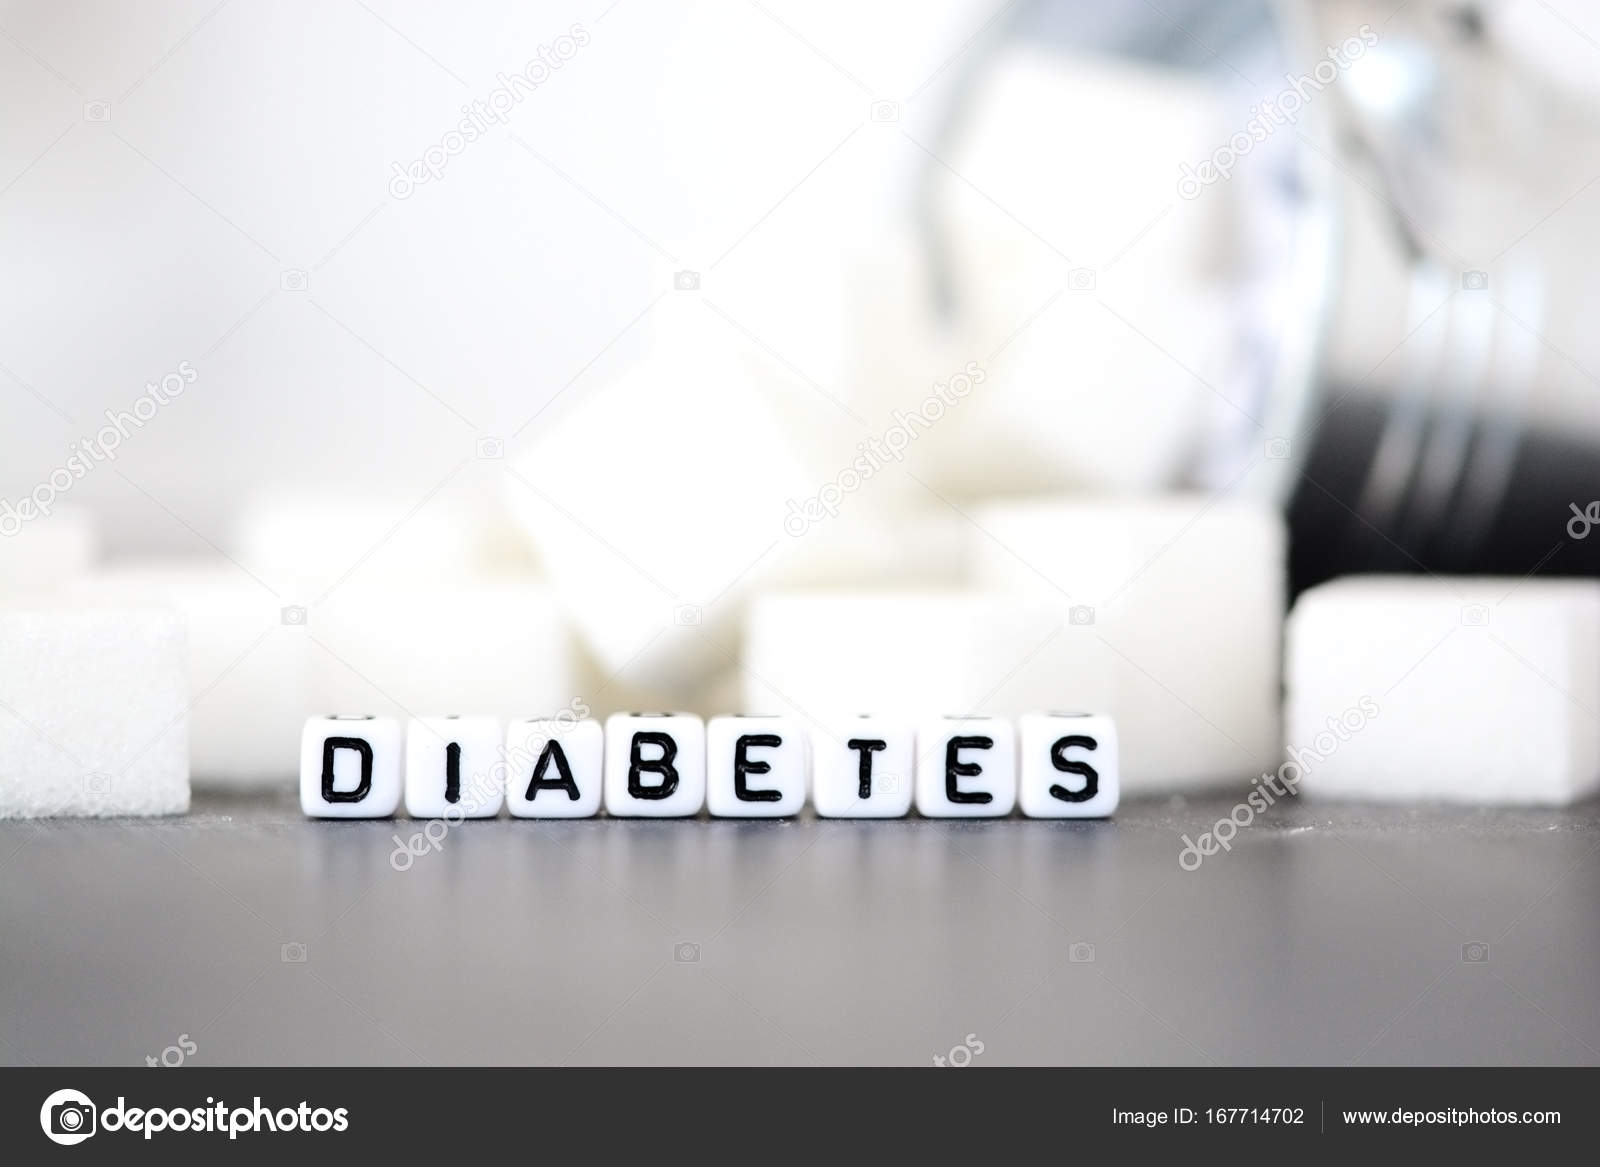 Diabetes Illness Concept With White Letter Beads In Front Of Pile Of